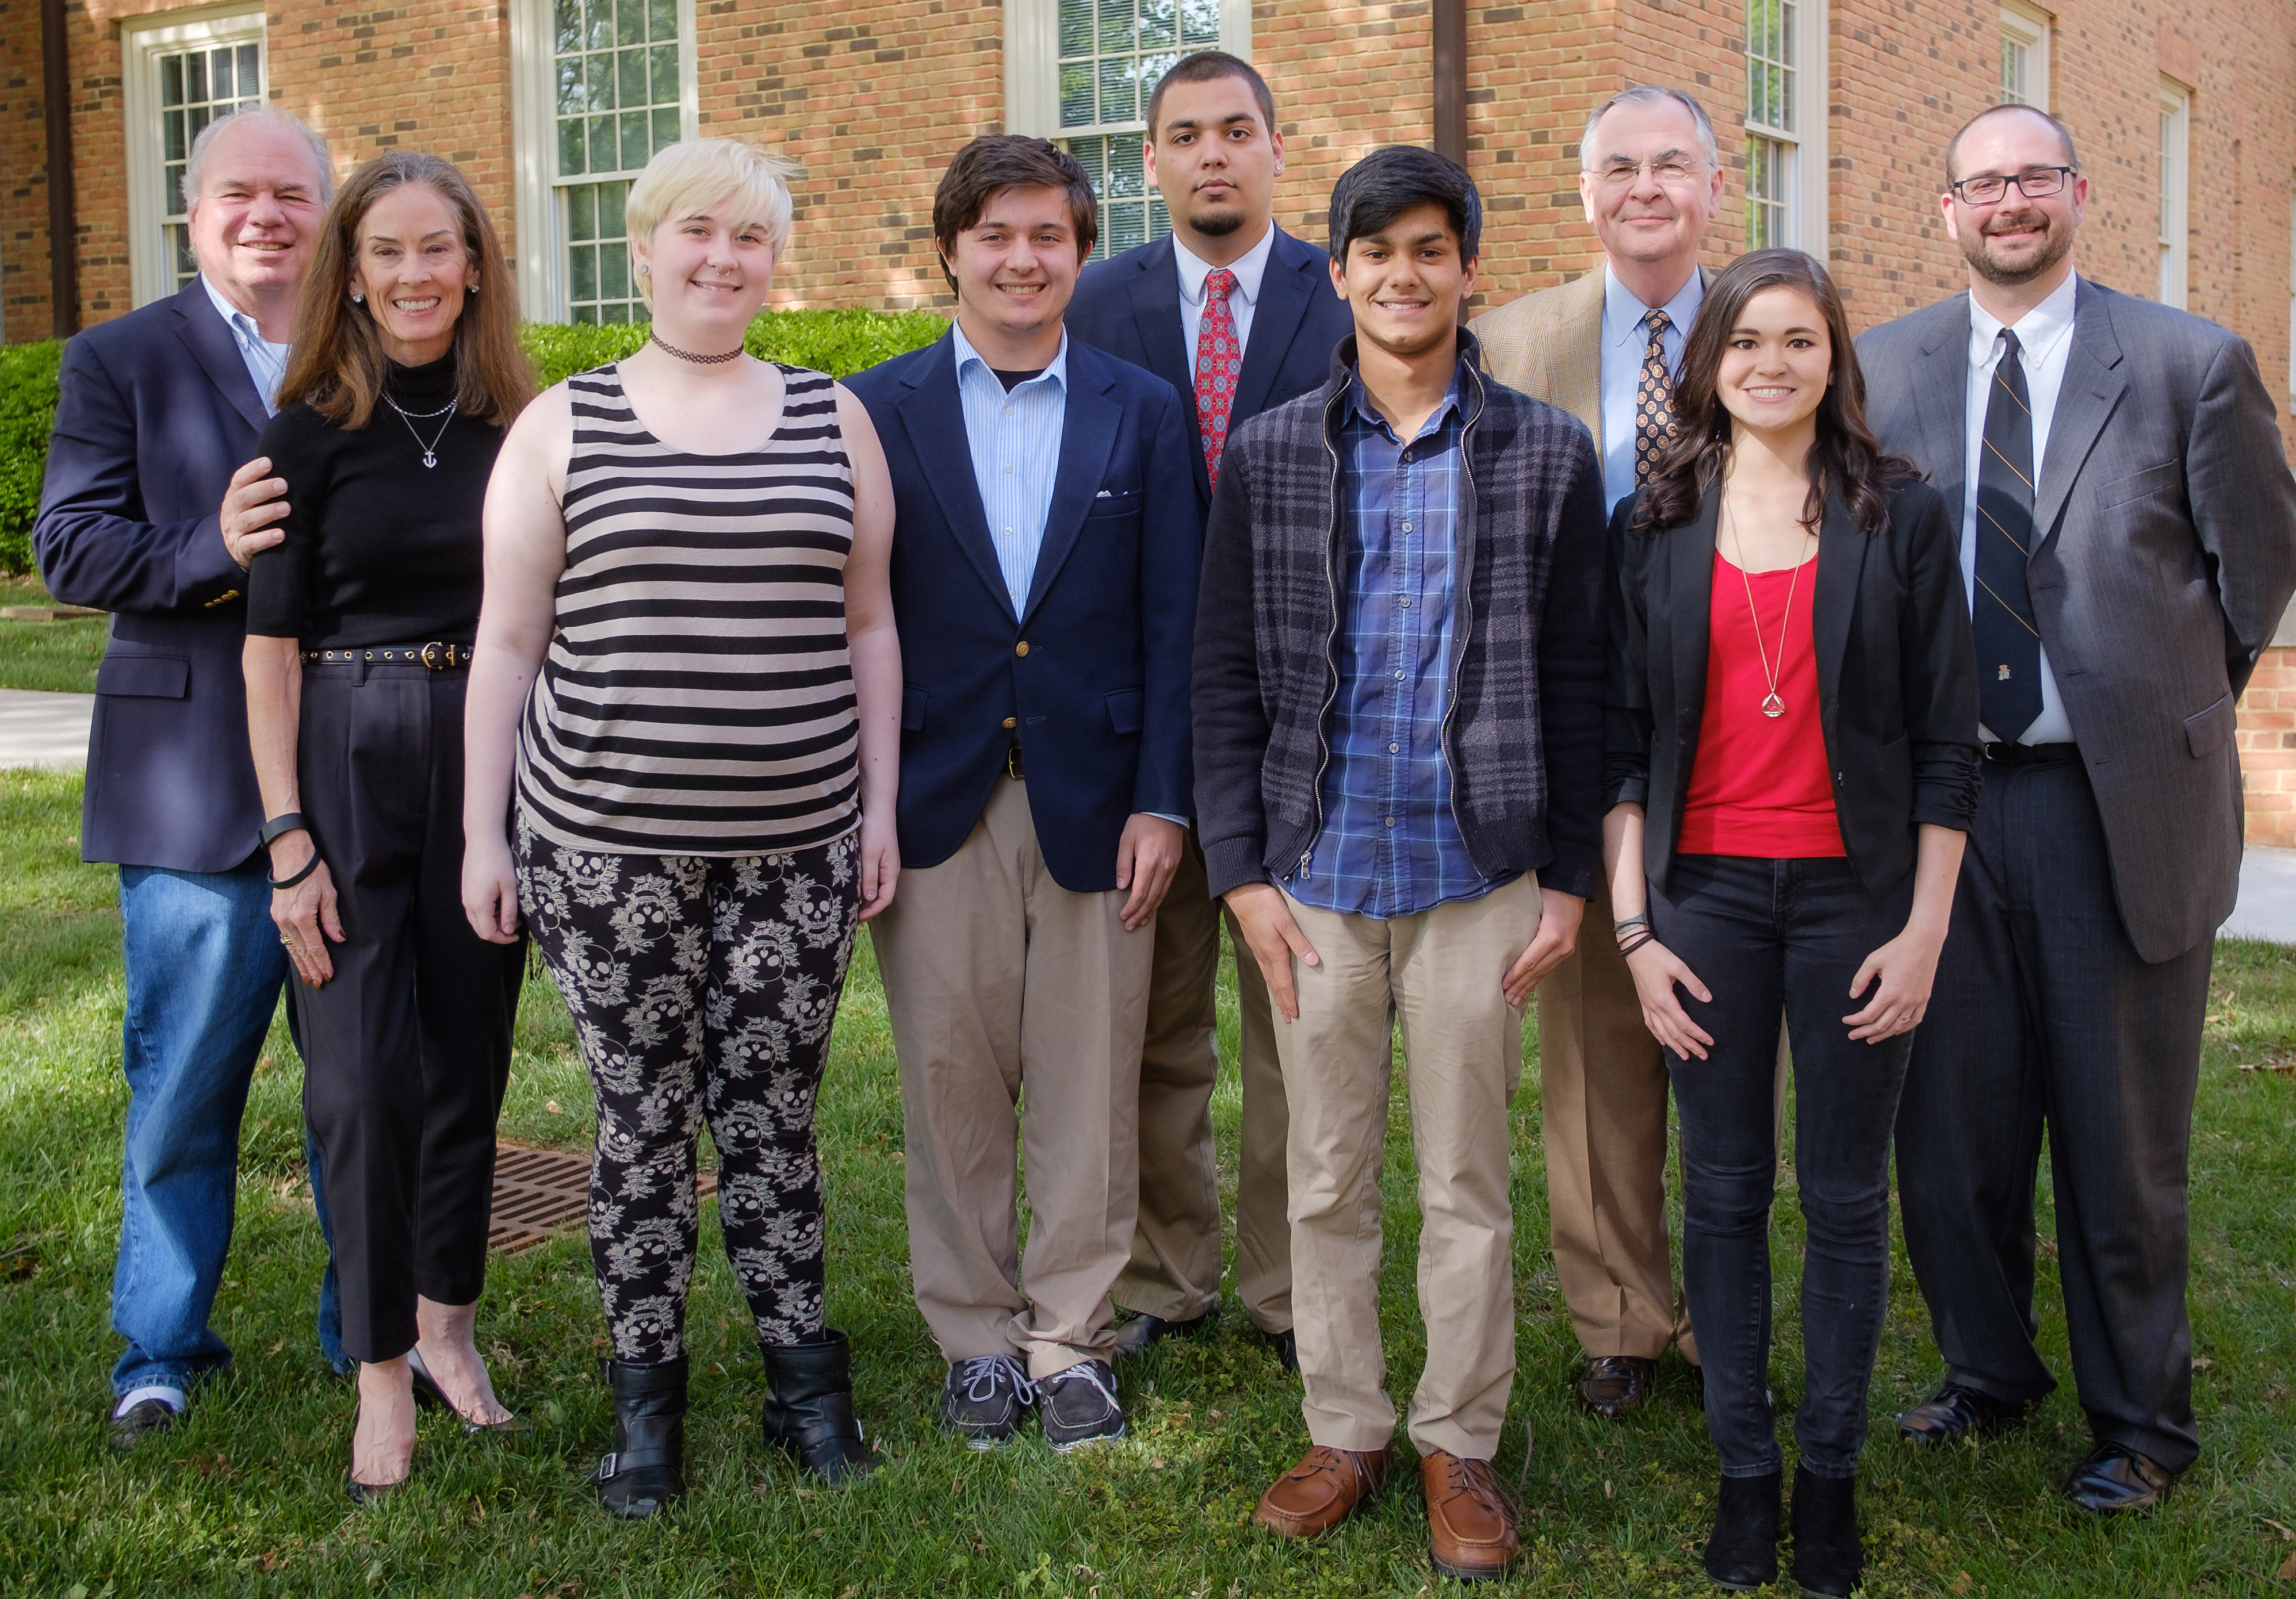 In 2016, Wake Forest debaters were awarded Salzman-Medica Scholarships funded by John and Megan Medica, left.